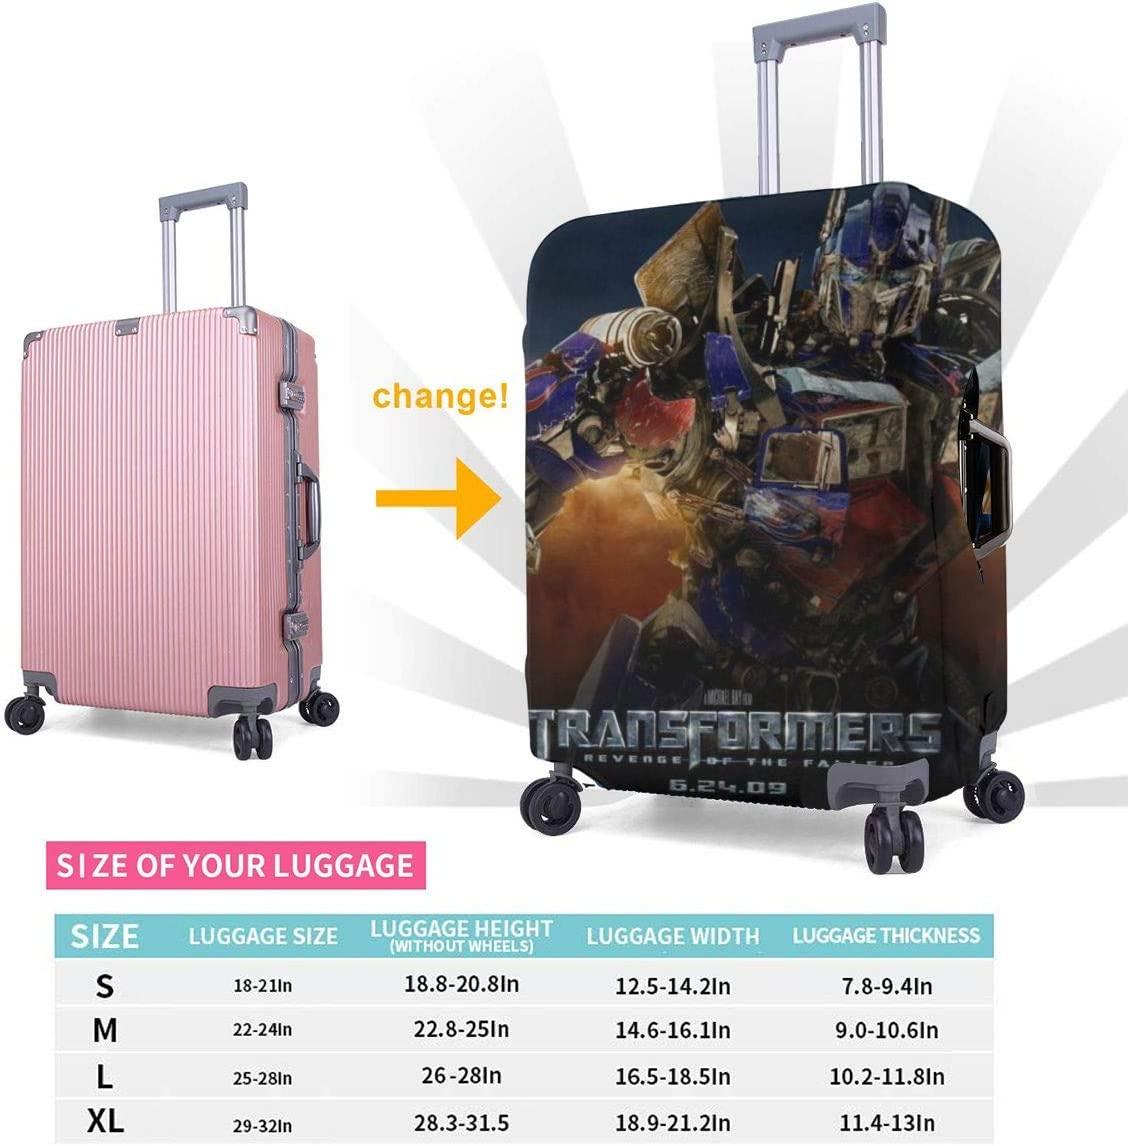 Tran/_Sformers Revenge Suitcase Protector Travel Luggage Cover Fit